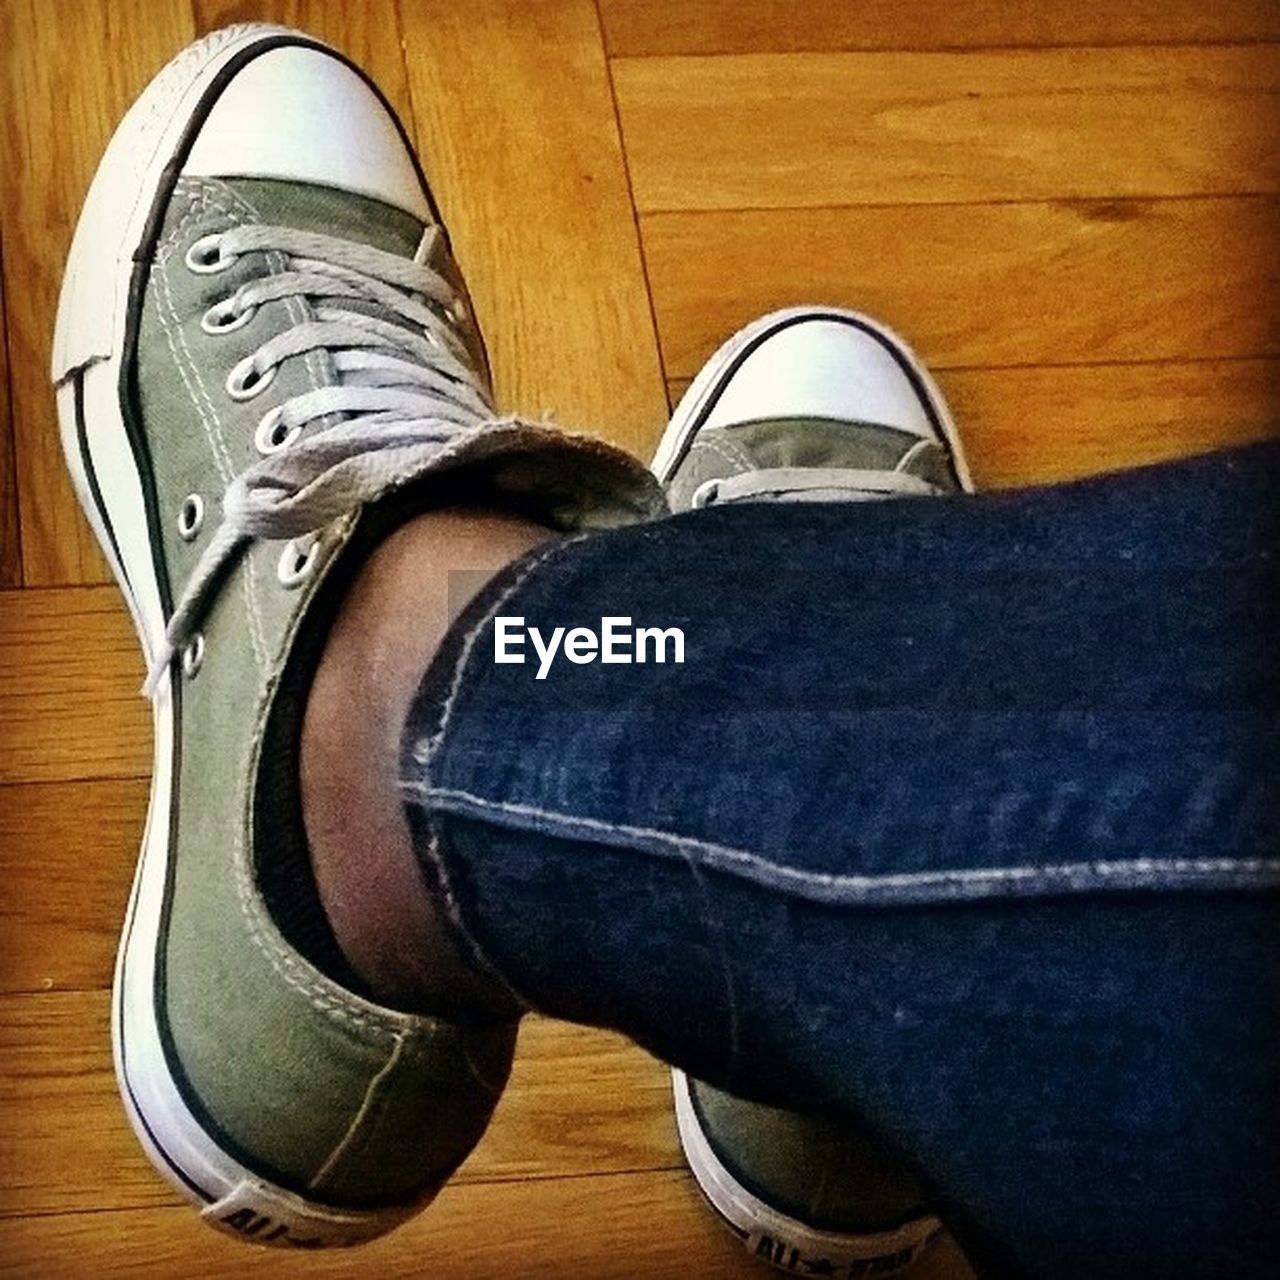 human leg, shoe, low section, jeans, human body part, one person, real people, human foot, personal perspective, canvas shoe, indoors, casual clothing, standing, lifestyles, leisure activity, hardwood floor, skateboard, directly above, close-up, high angle view, fashion, men, day, human hand, skateboard park, adult, people